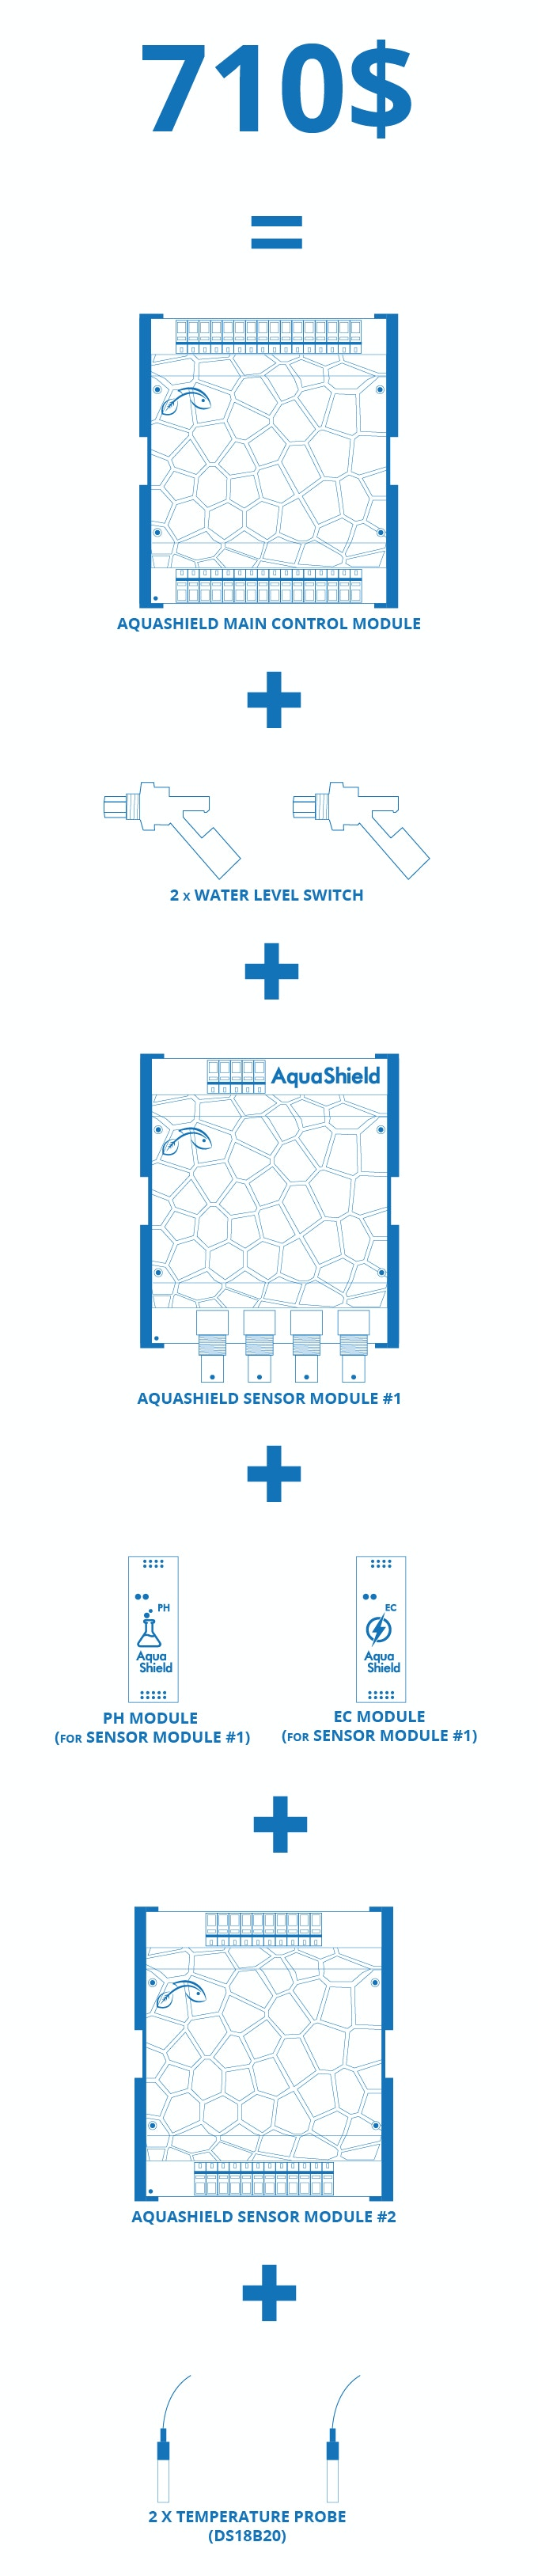 AquaShield smart controlling for hydroponics and aquaponics